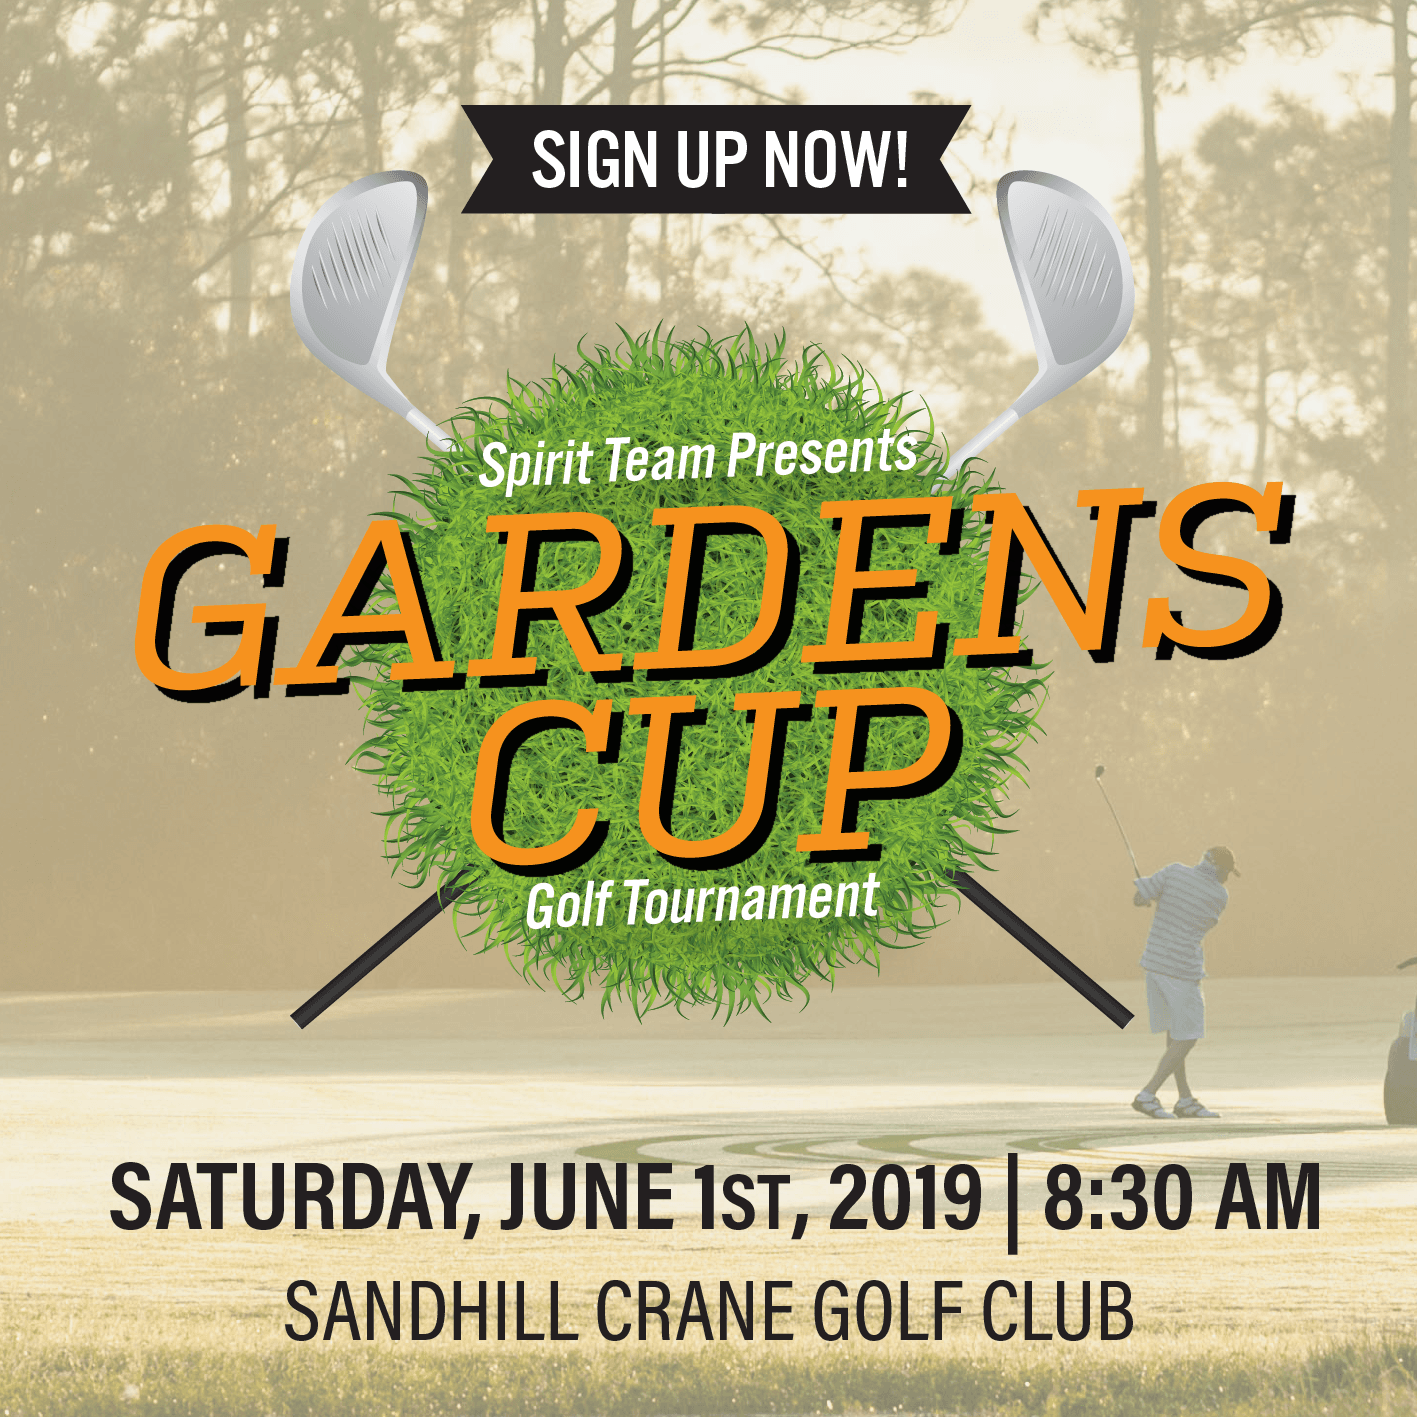 Gardens Cup Golf Tournament, Saturday, June 1, 2019 at 8:30 a.m.